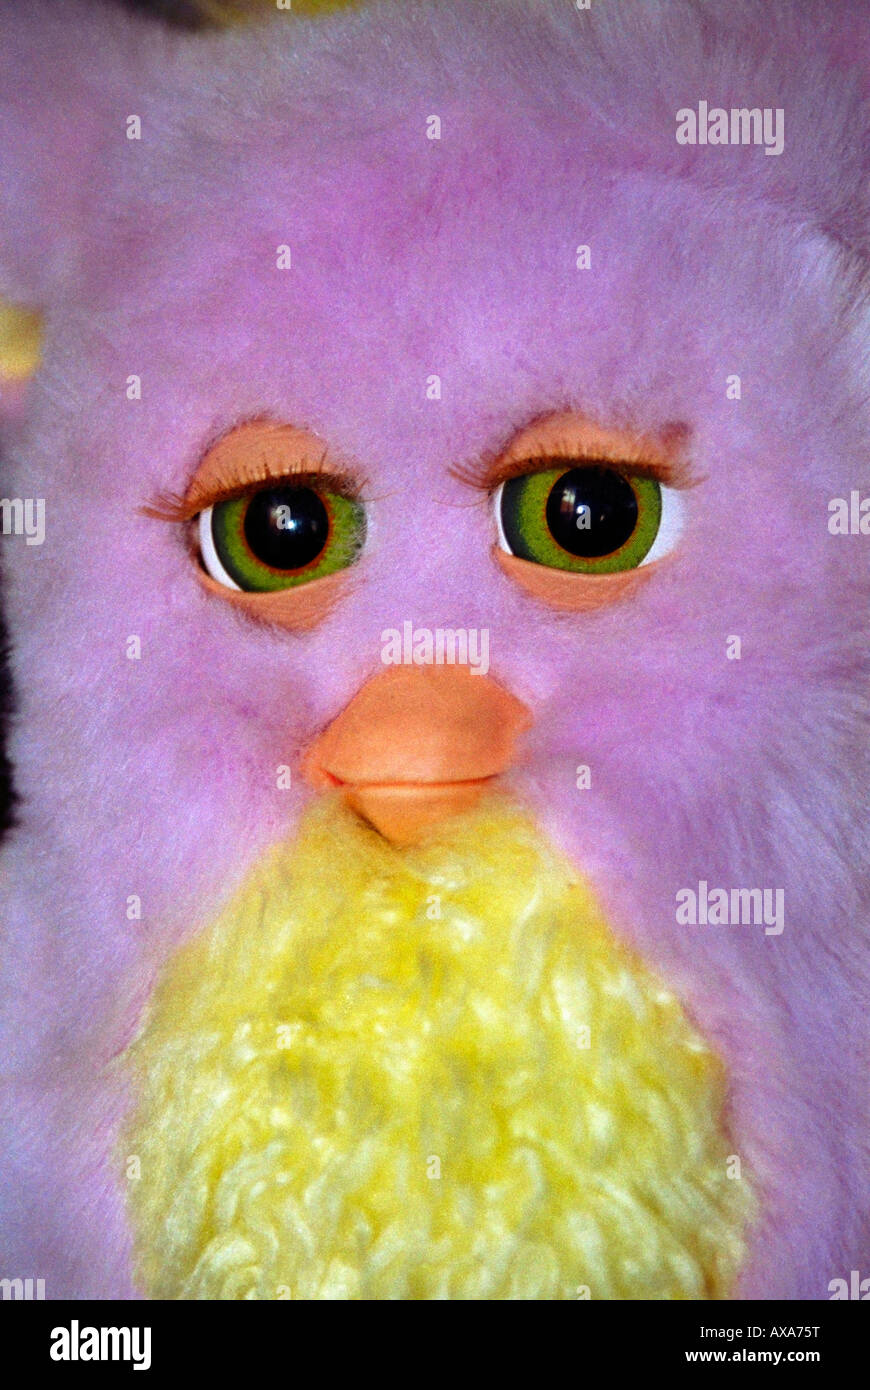 Furby Stock Photos & Furby Stock Images - Alamy